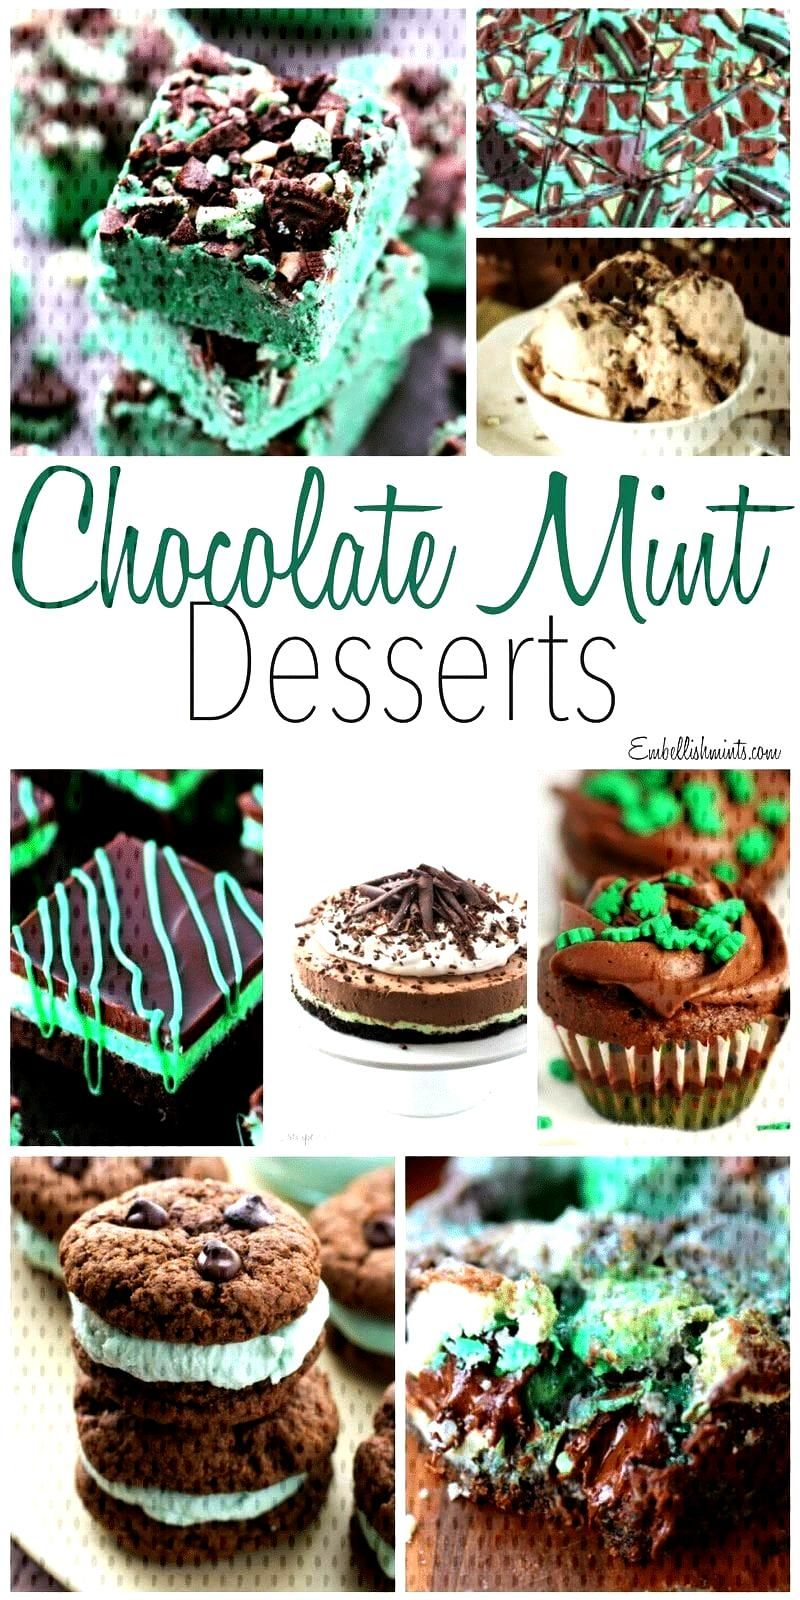 Chocolate Mint Desserts Including Brownies, Cheesecake, Ice Cream... -